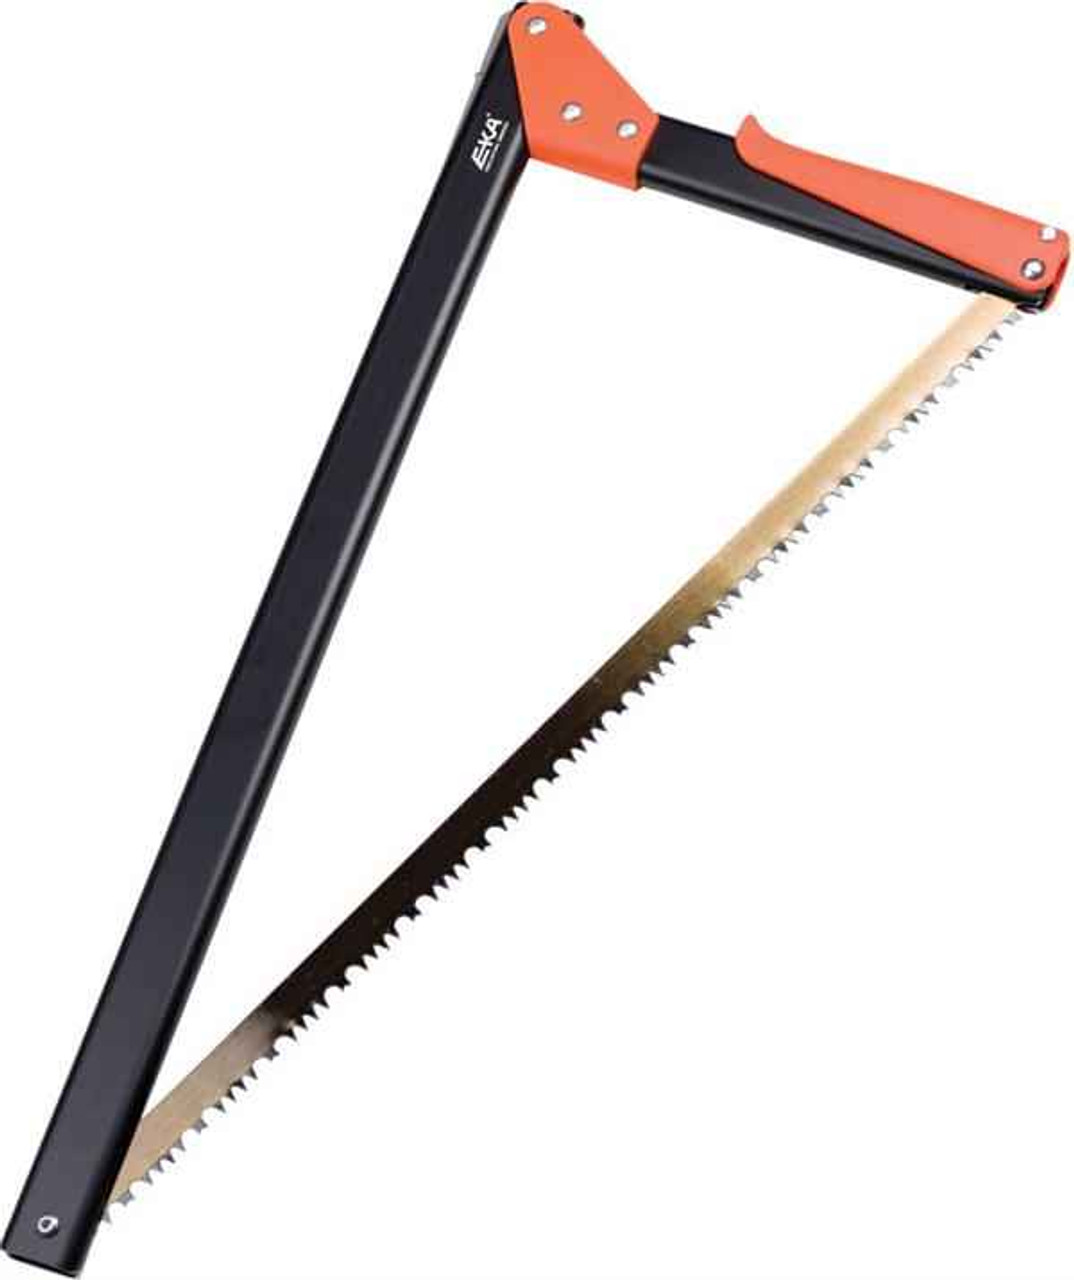 """EKA Viking Combi-Saw. Approximately 21"""" closed, Black finish handles with orange grip and connector"""